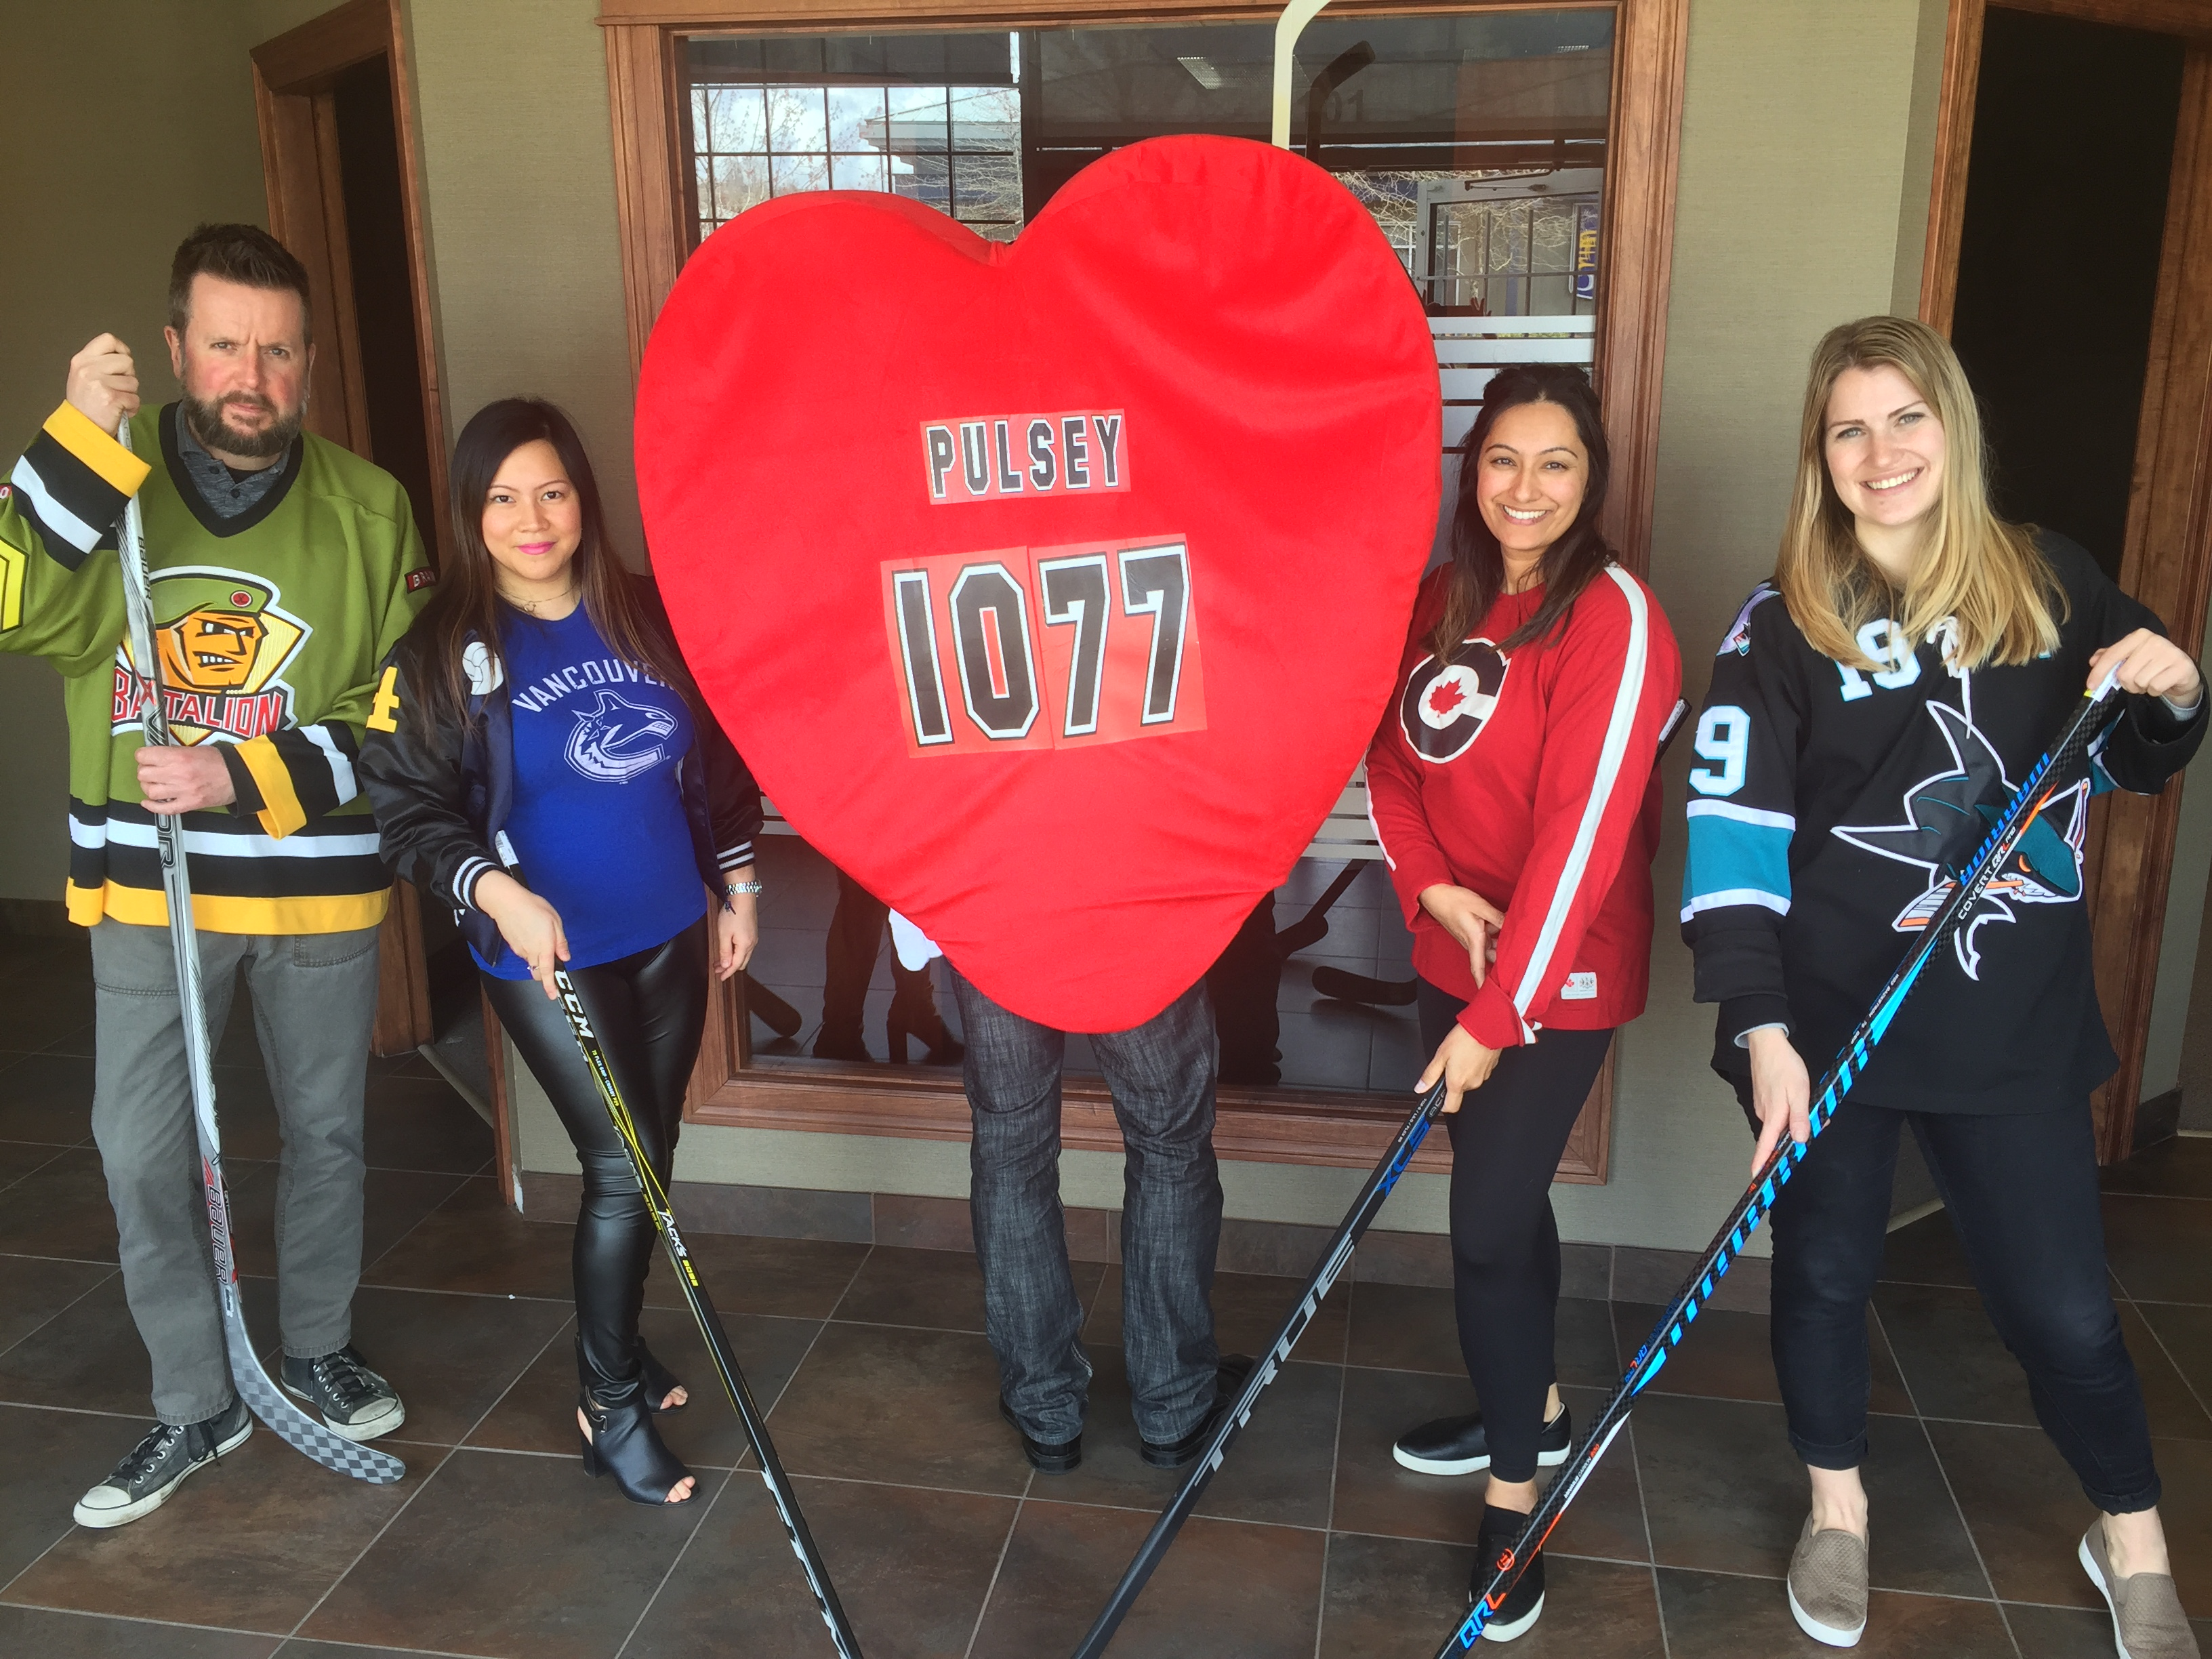 PULSE FM is #HumboldtStrong #JerseyDay